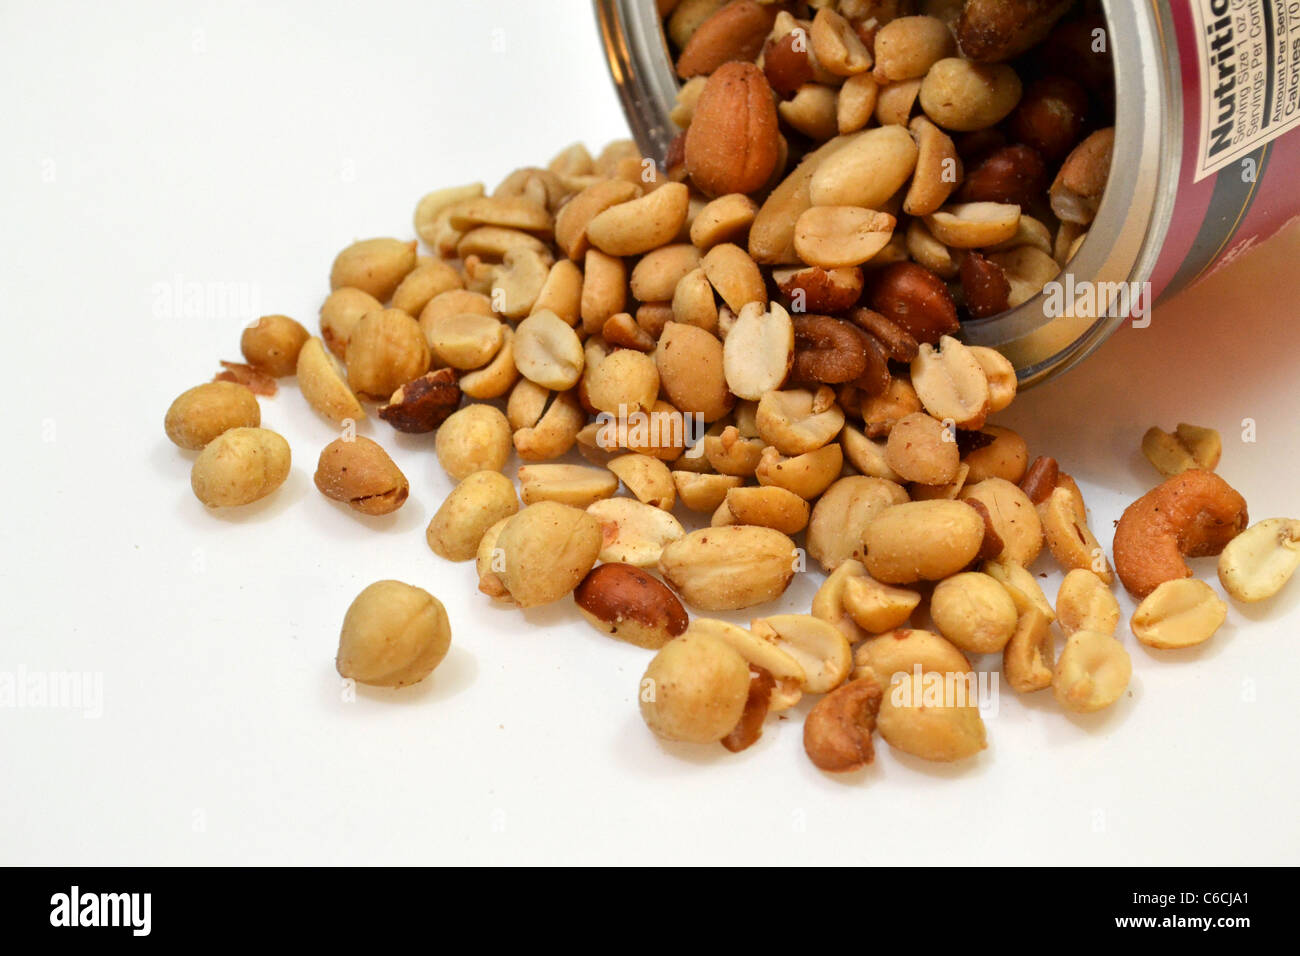 A open can of mixed nuts lays on it's side. - Stock Image